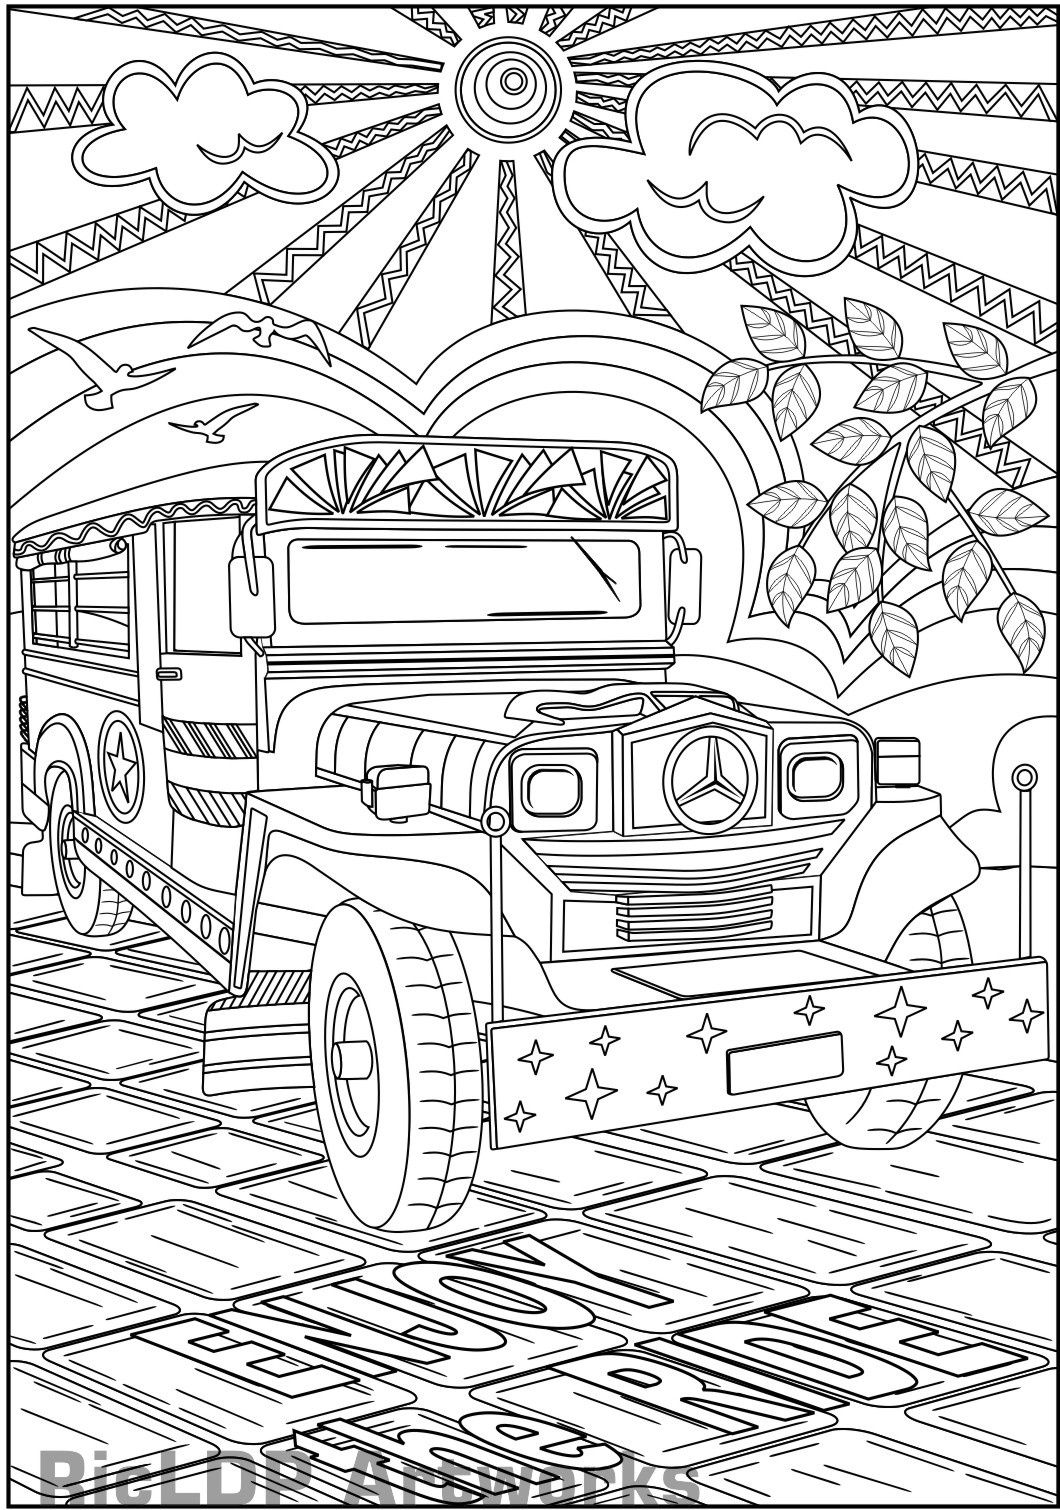 Free coloring page jeep - Enjoy The Ride Philippine Jeepney Coloring Page